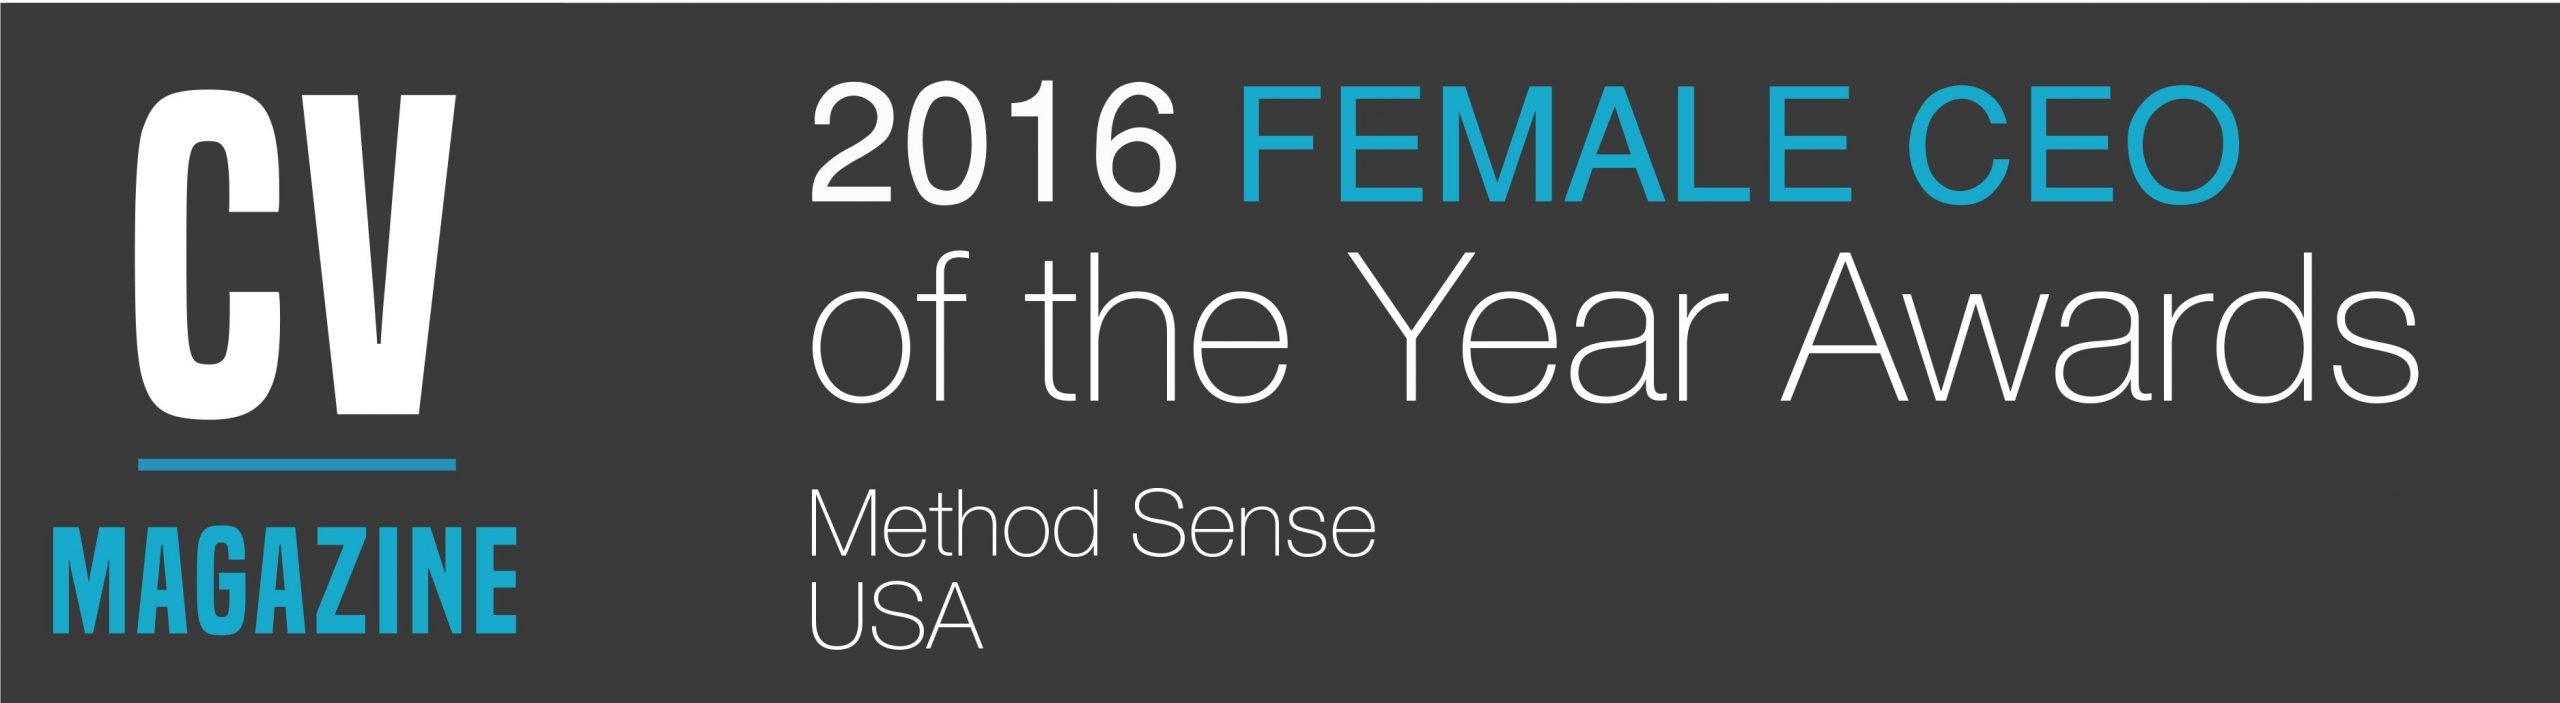 MethodSense CEO Named Female CEO of the Year